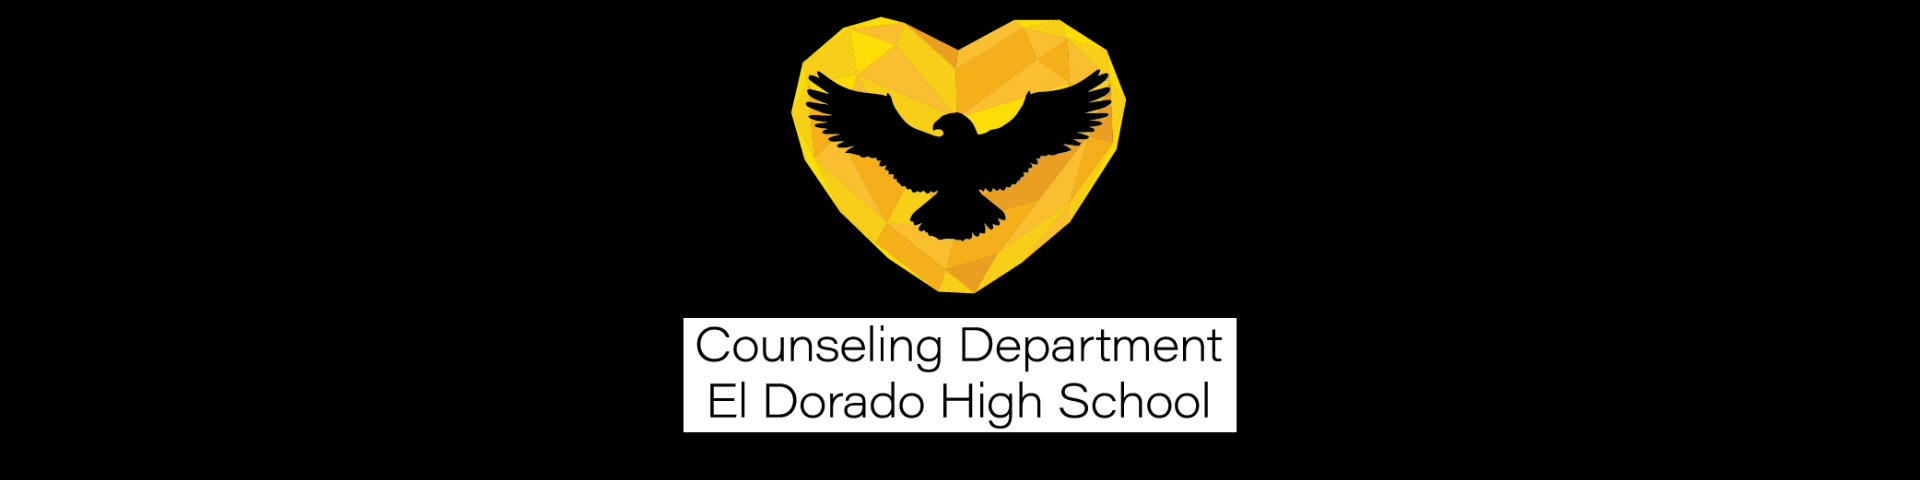 Counseling Department El Dorado High School